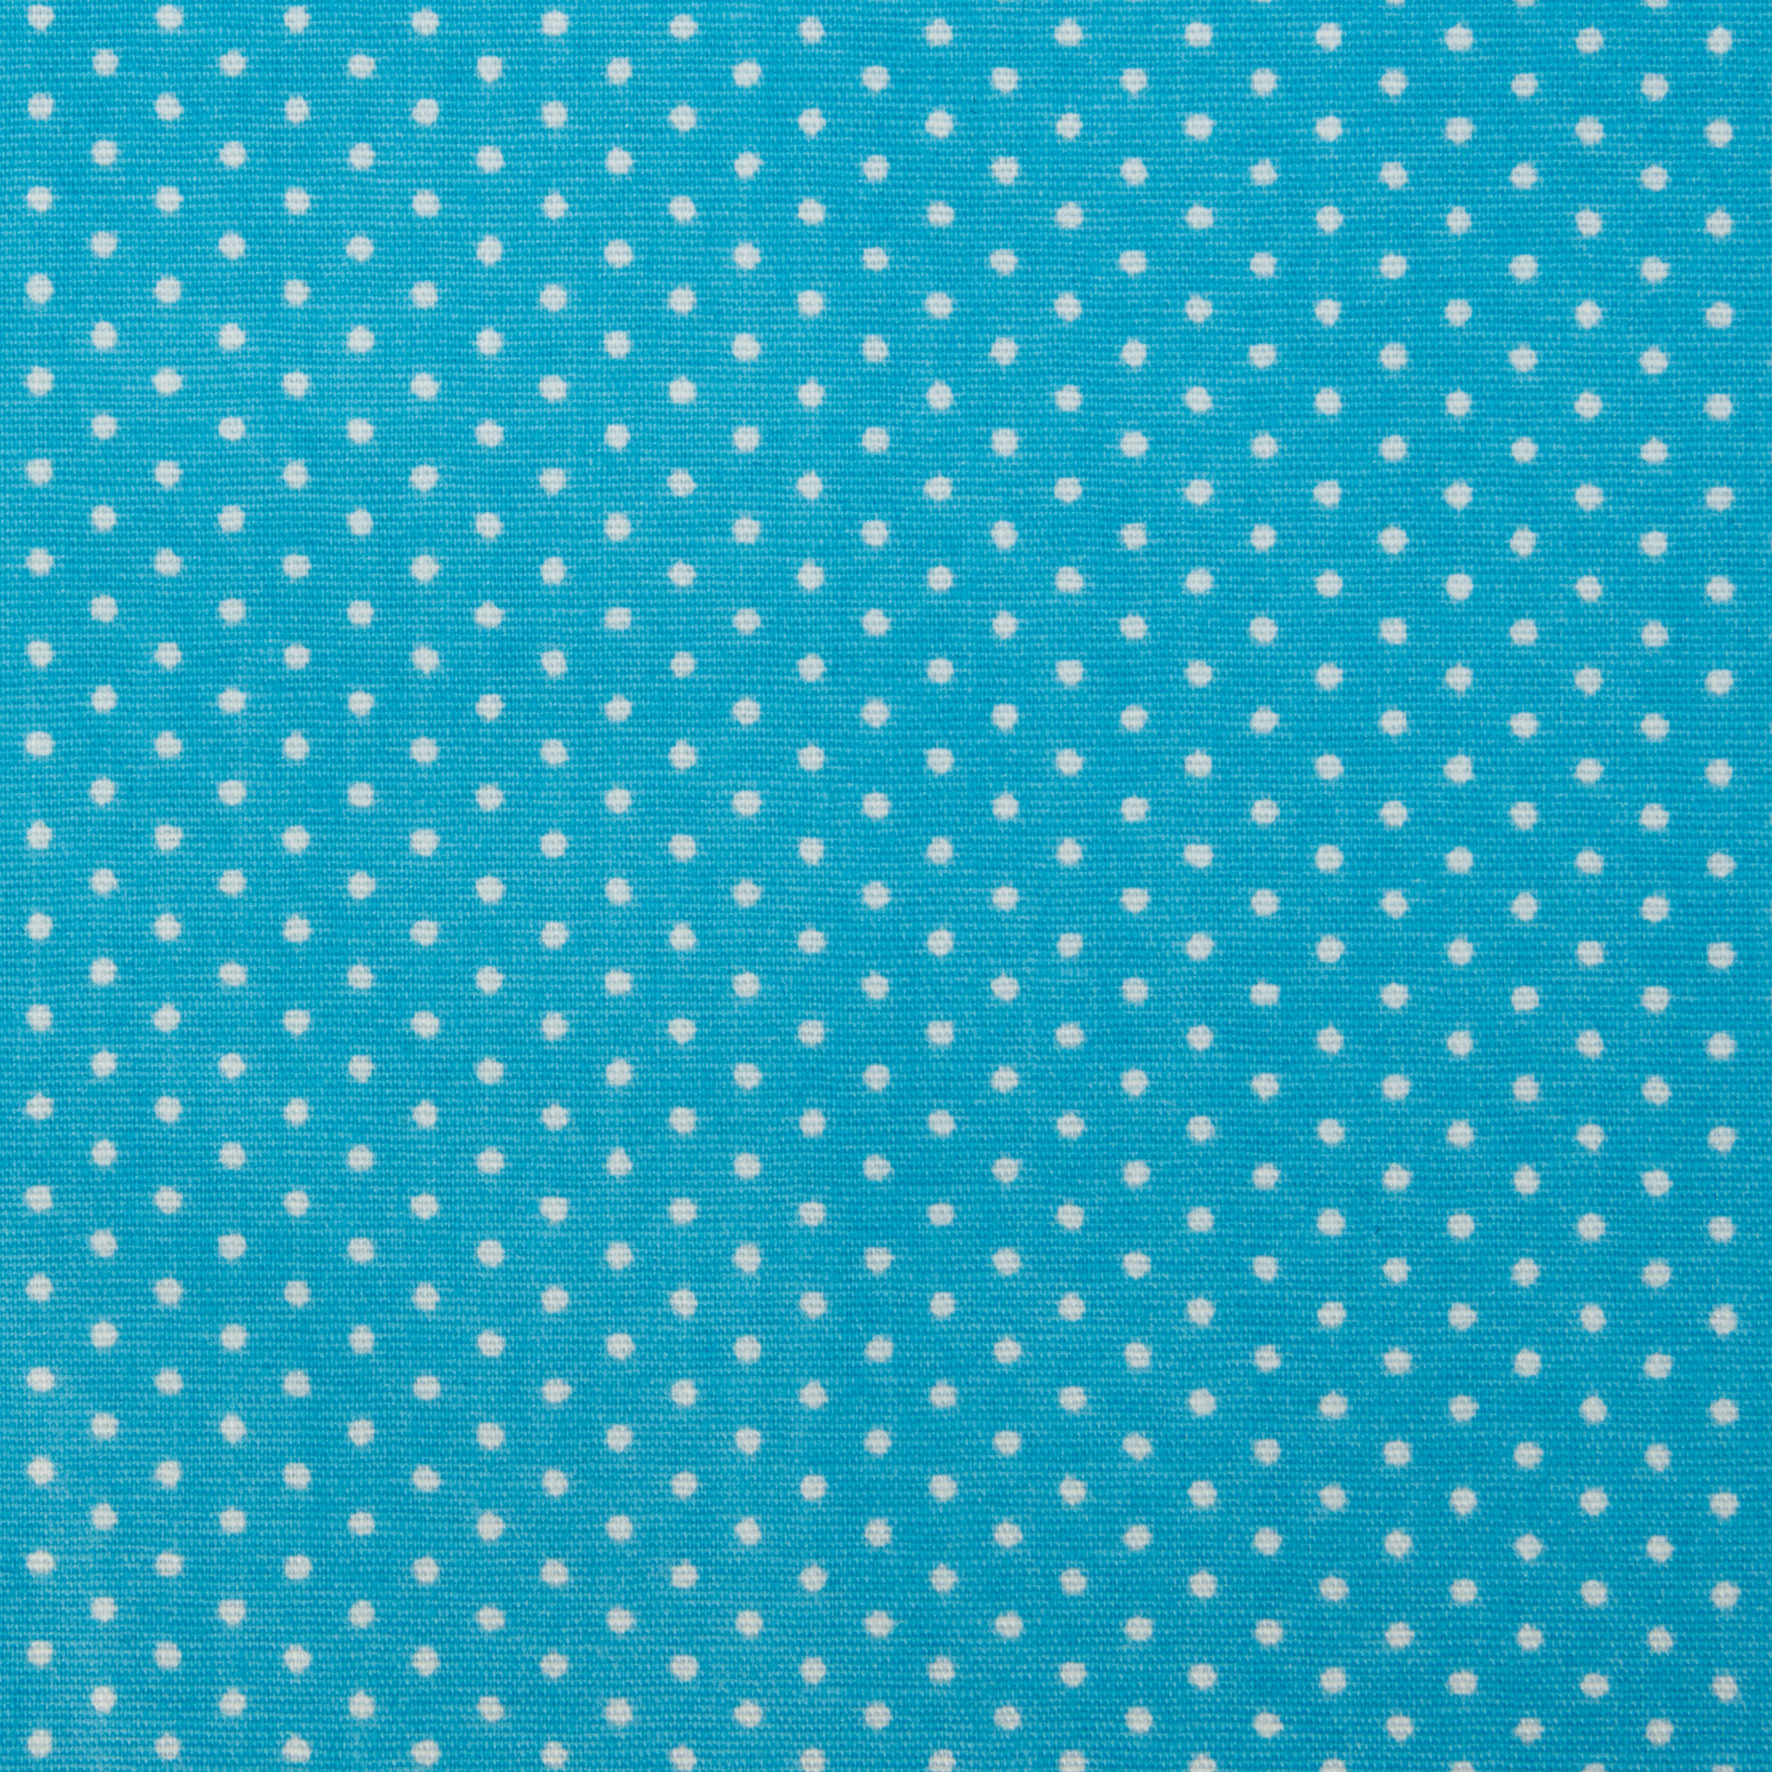 Buy tailor made shirts online - Mauritius  - Sky Blue with Polka Dots